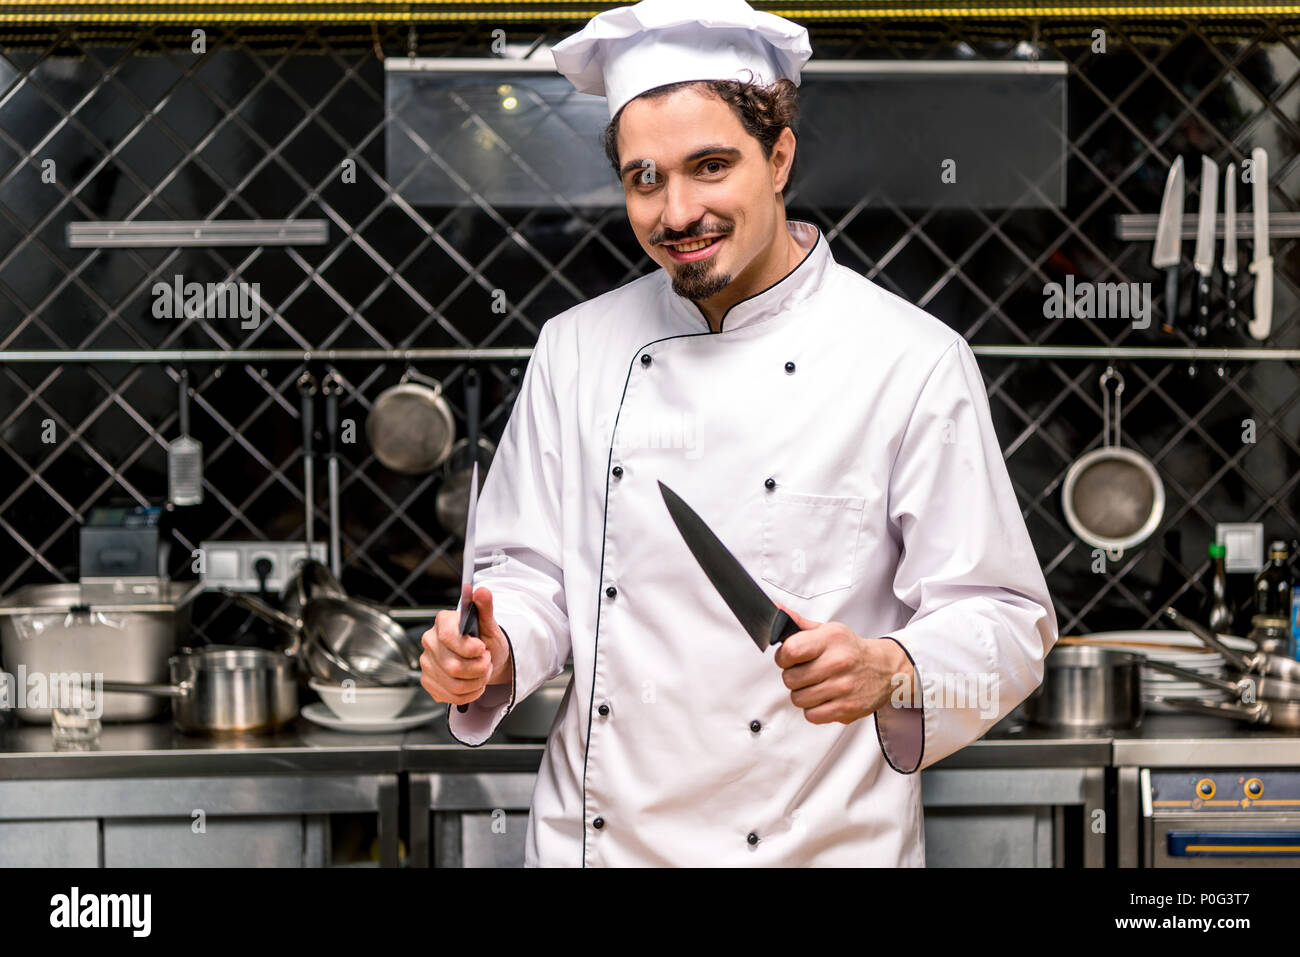 smiling chef standing with knifes in kitchen - Stock Image